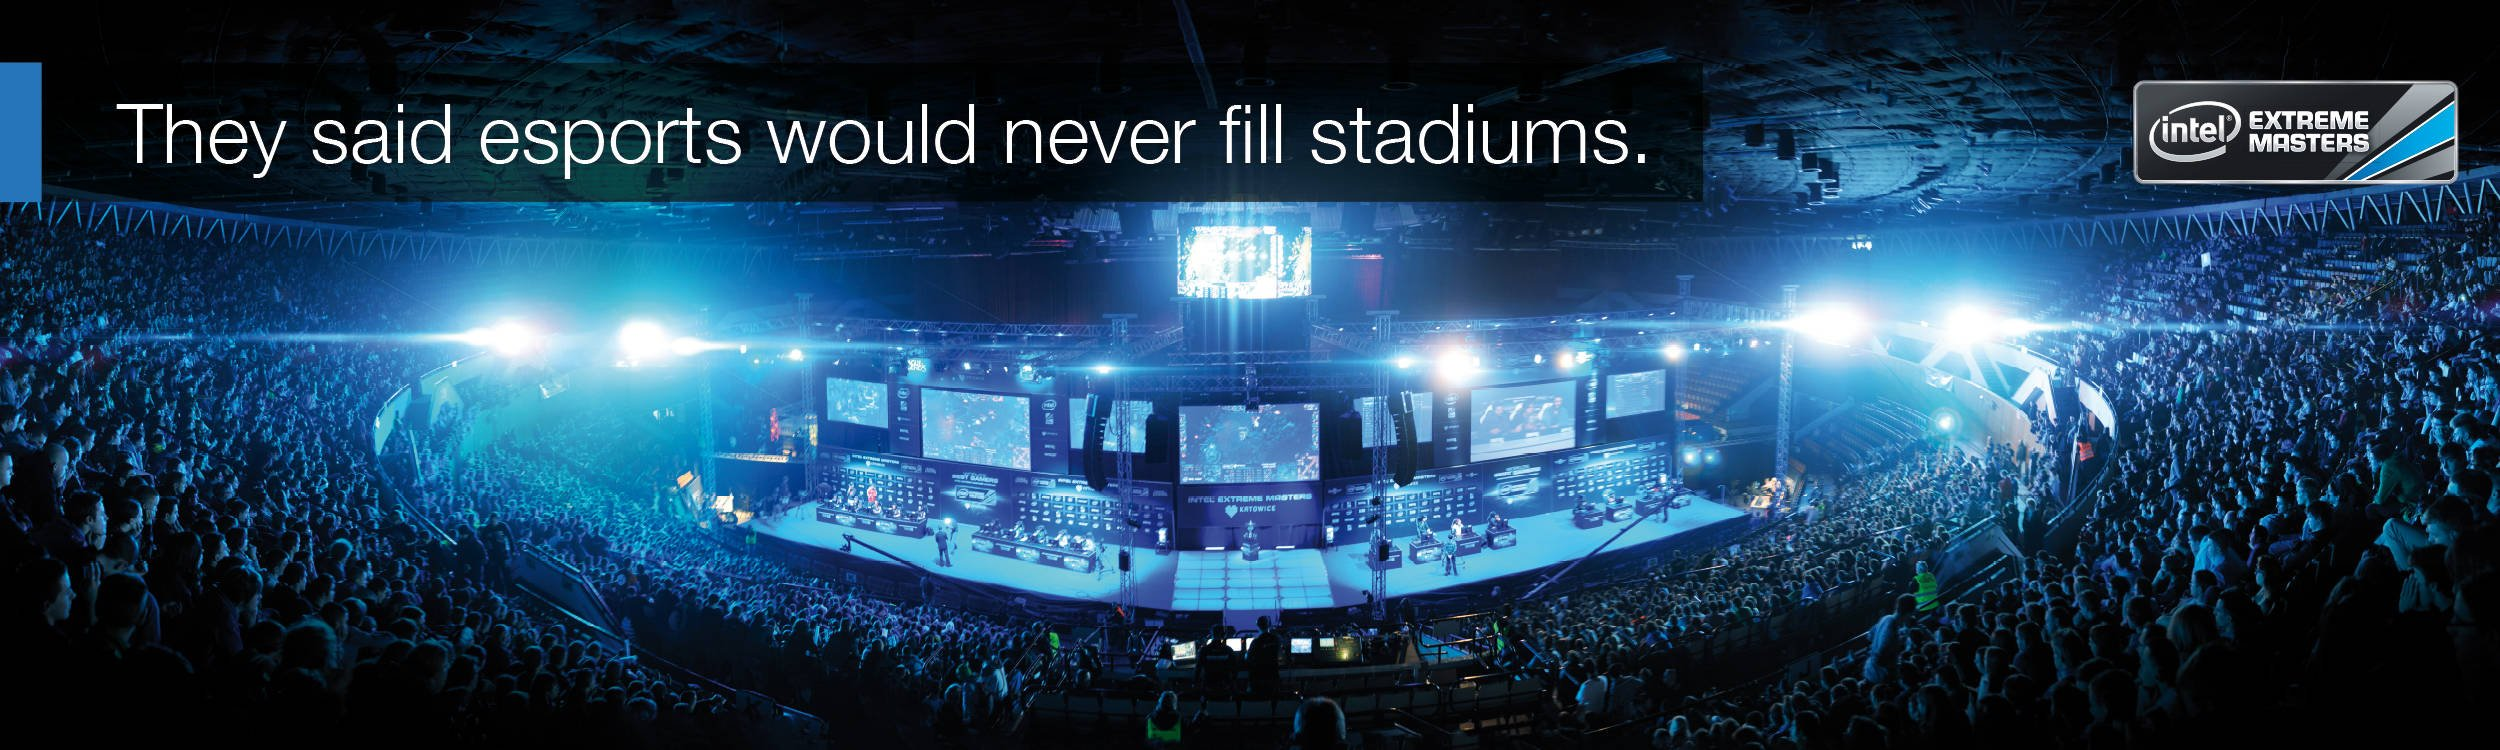 they_said_esport_will_never_fill_stadiums